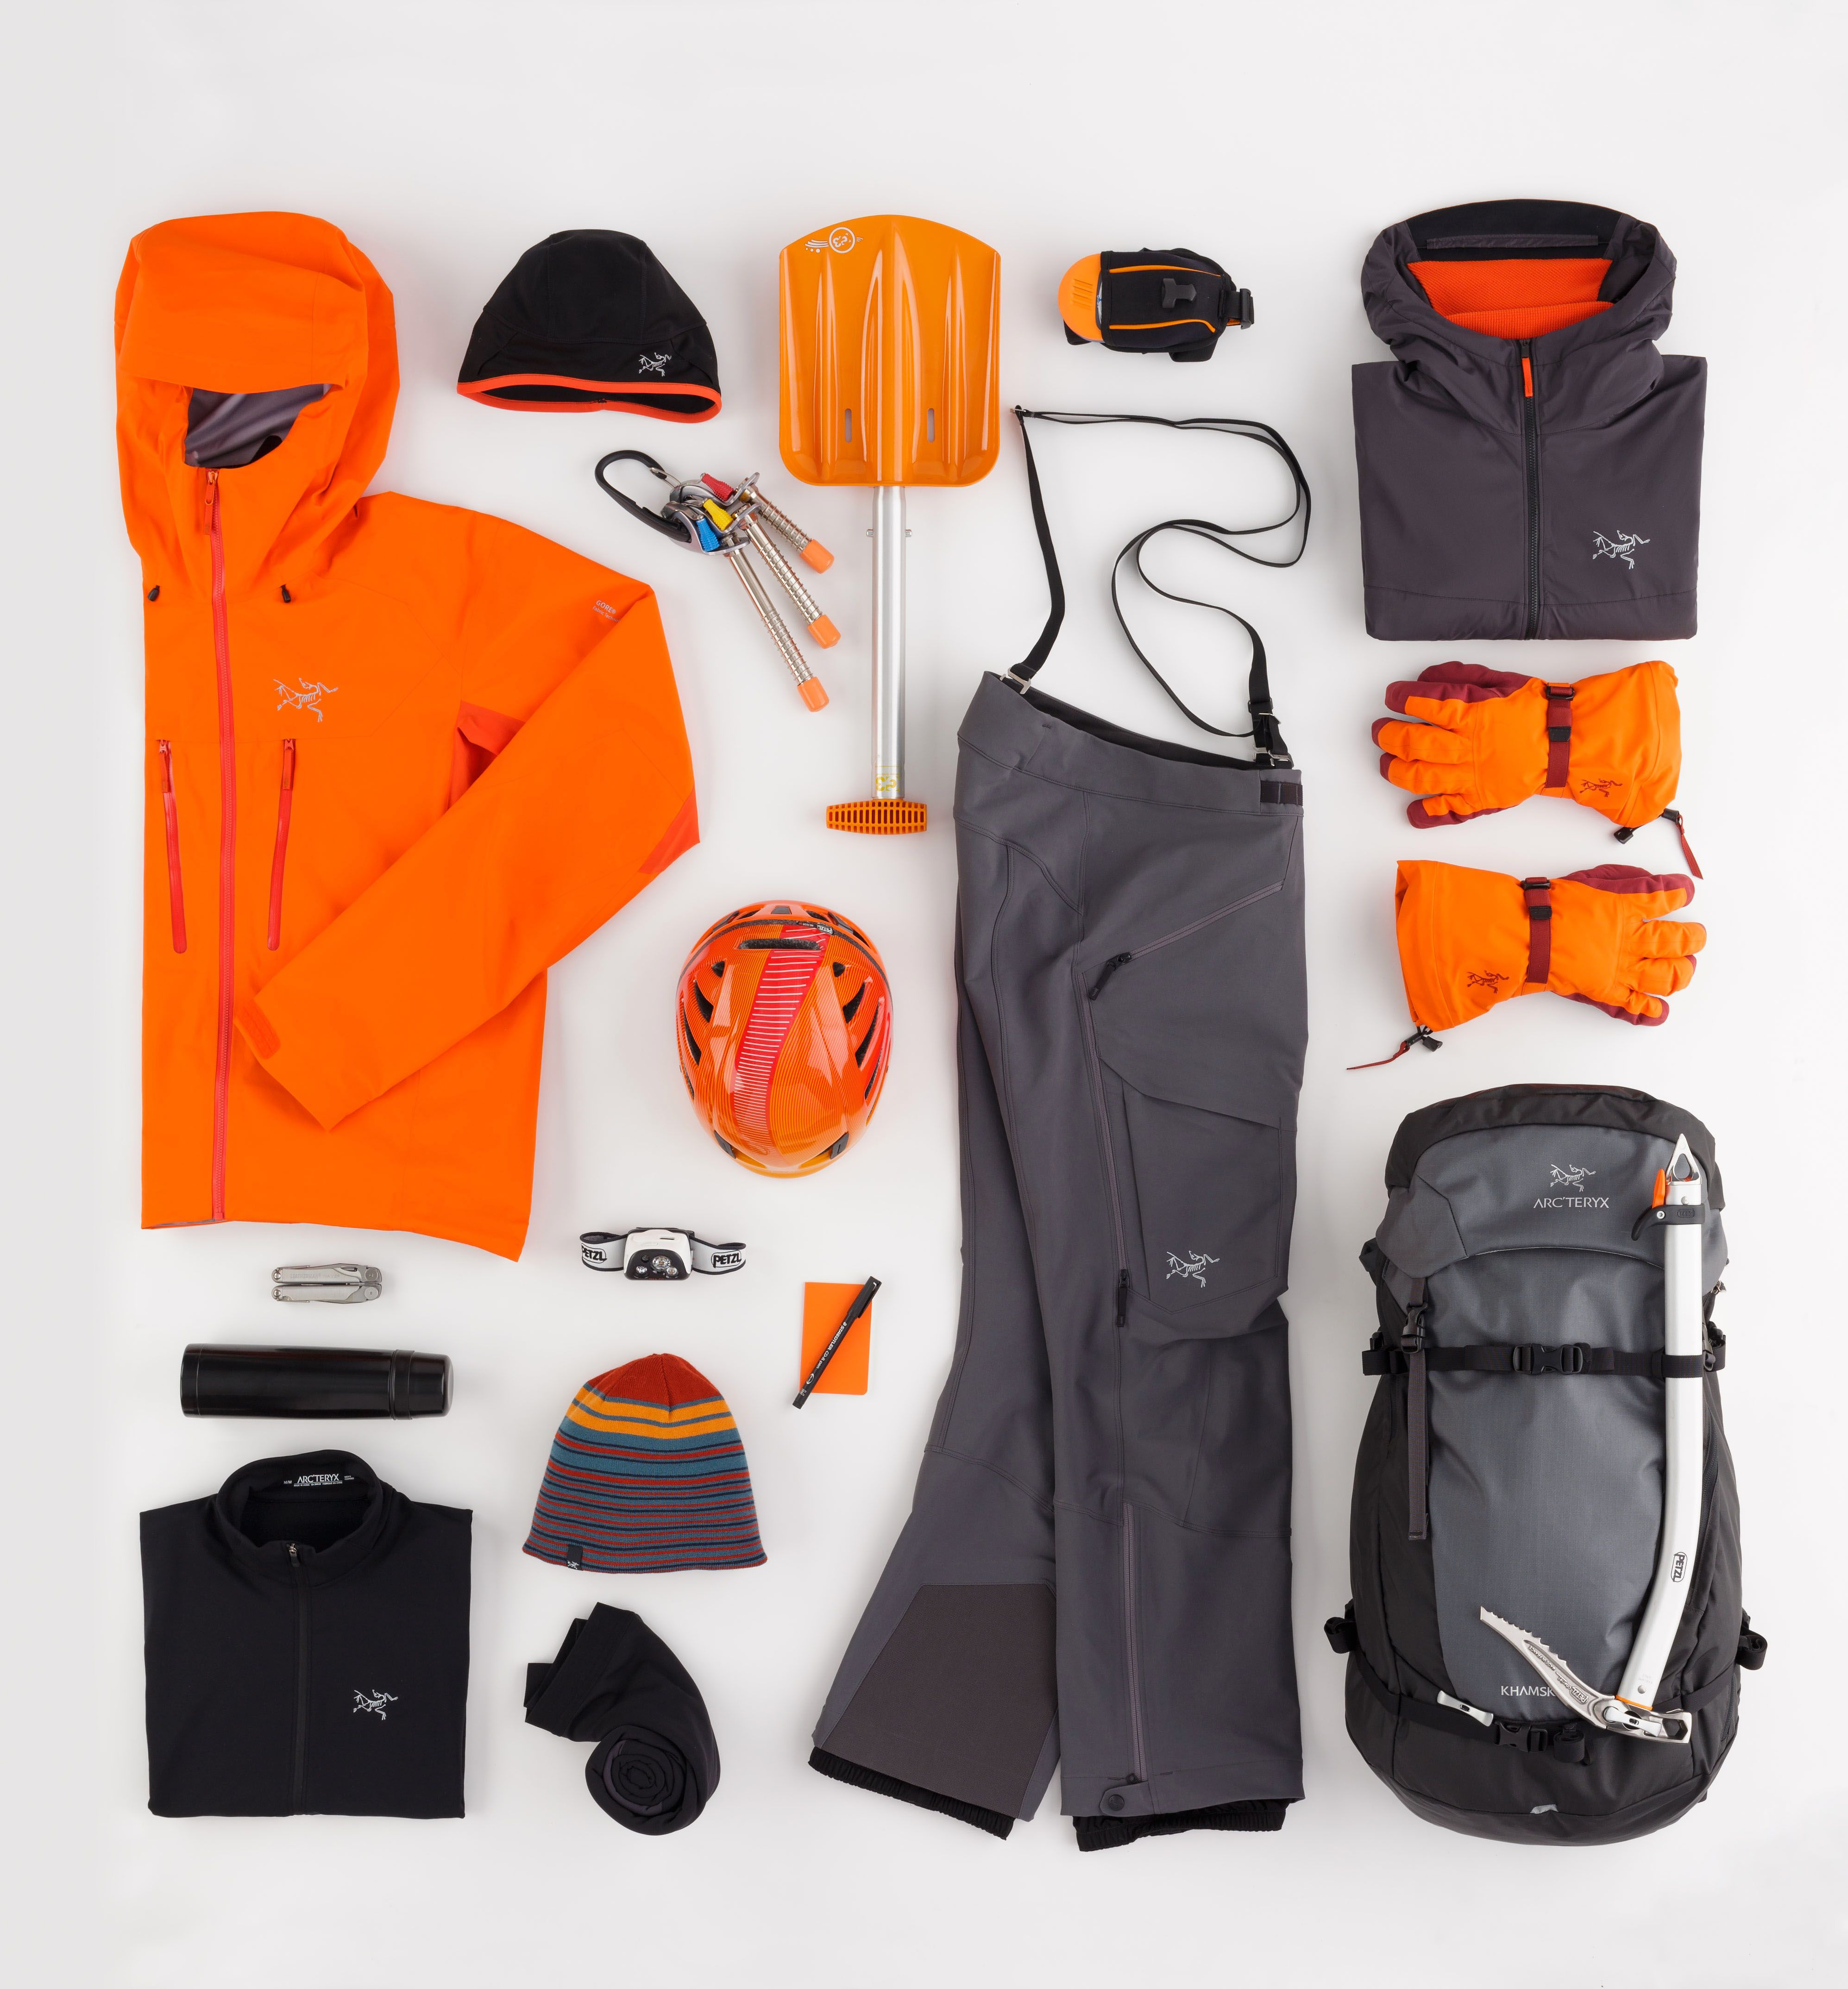 Everything you need for an adventure filled day in whistler arc teryx men s